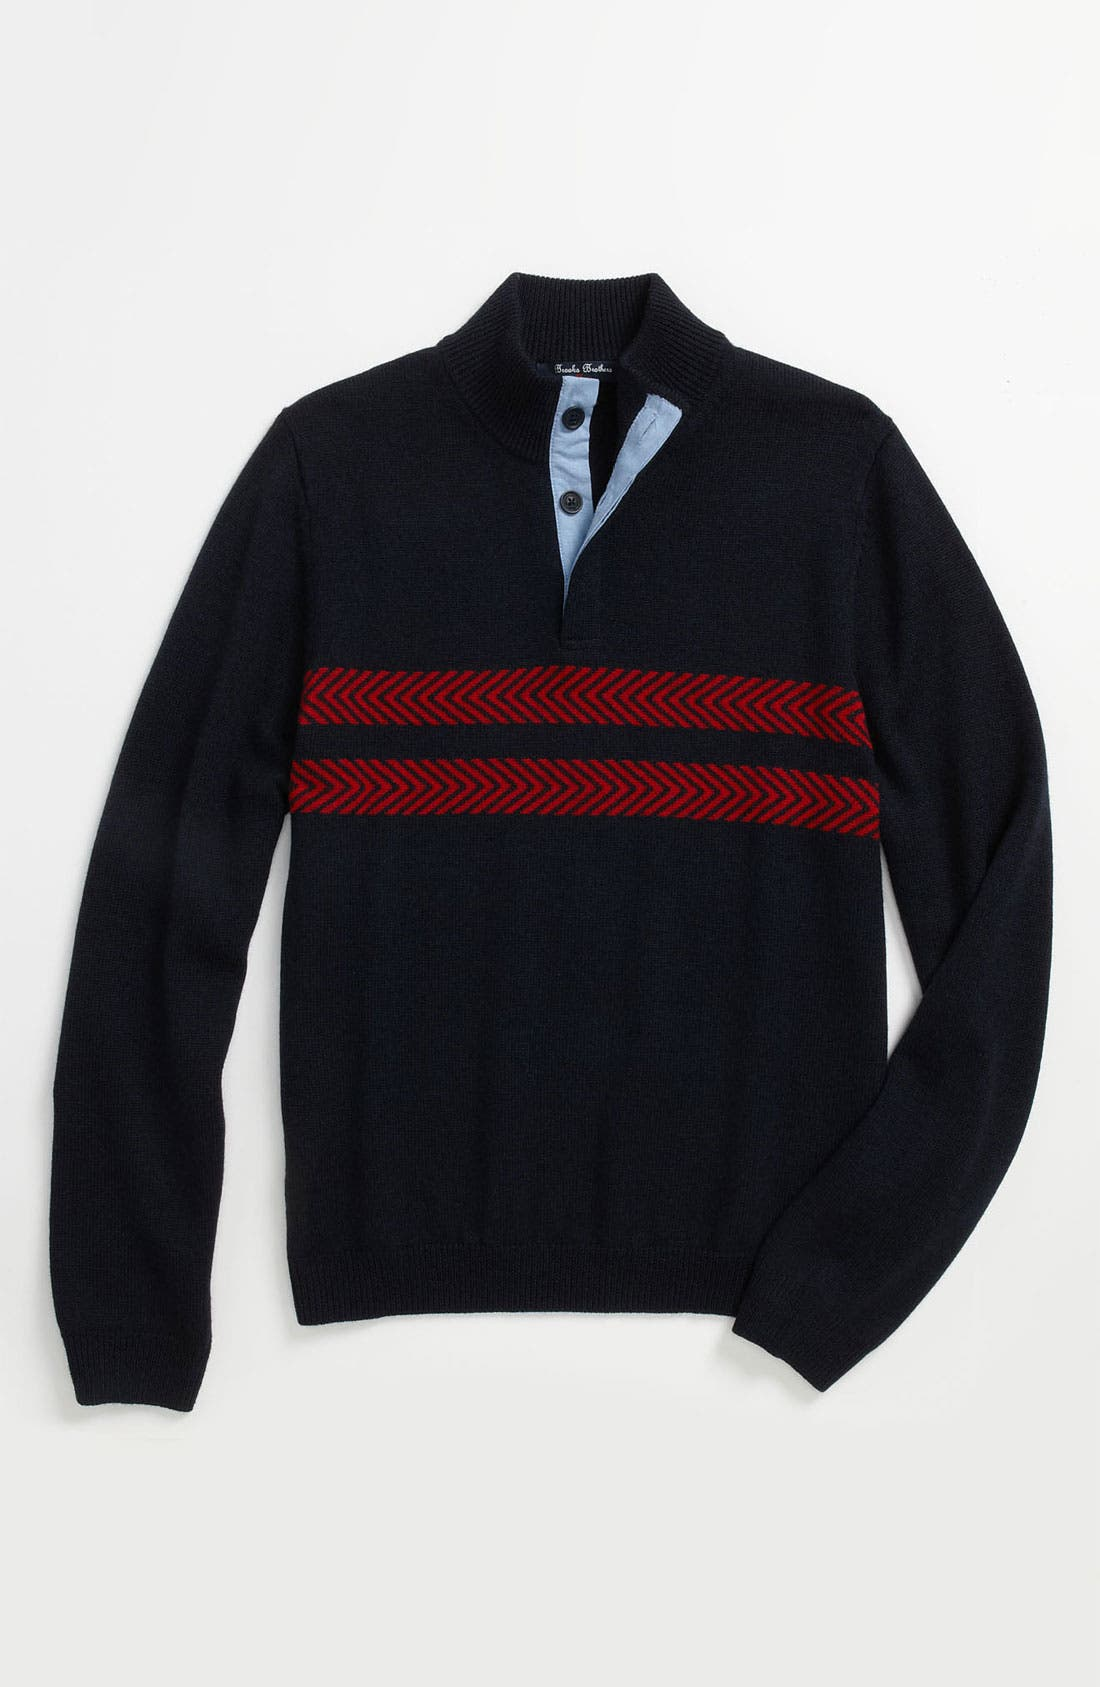 Alternate Image 1 Selected - Brooks Brothers Stand-Up Collar Sweater (Big Boys)